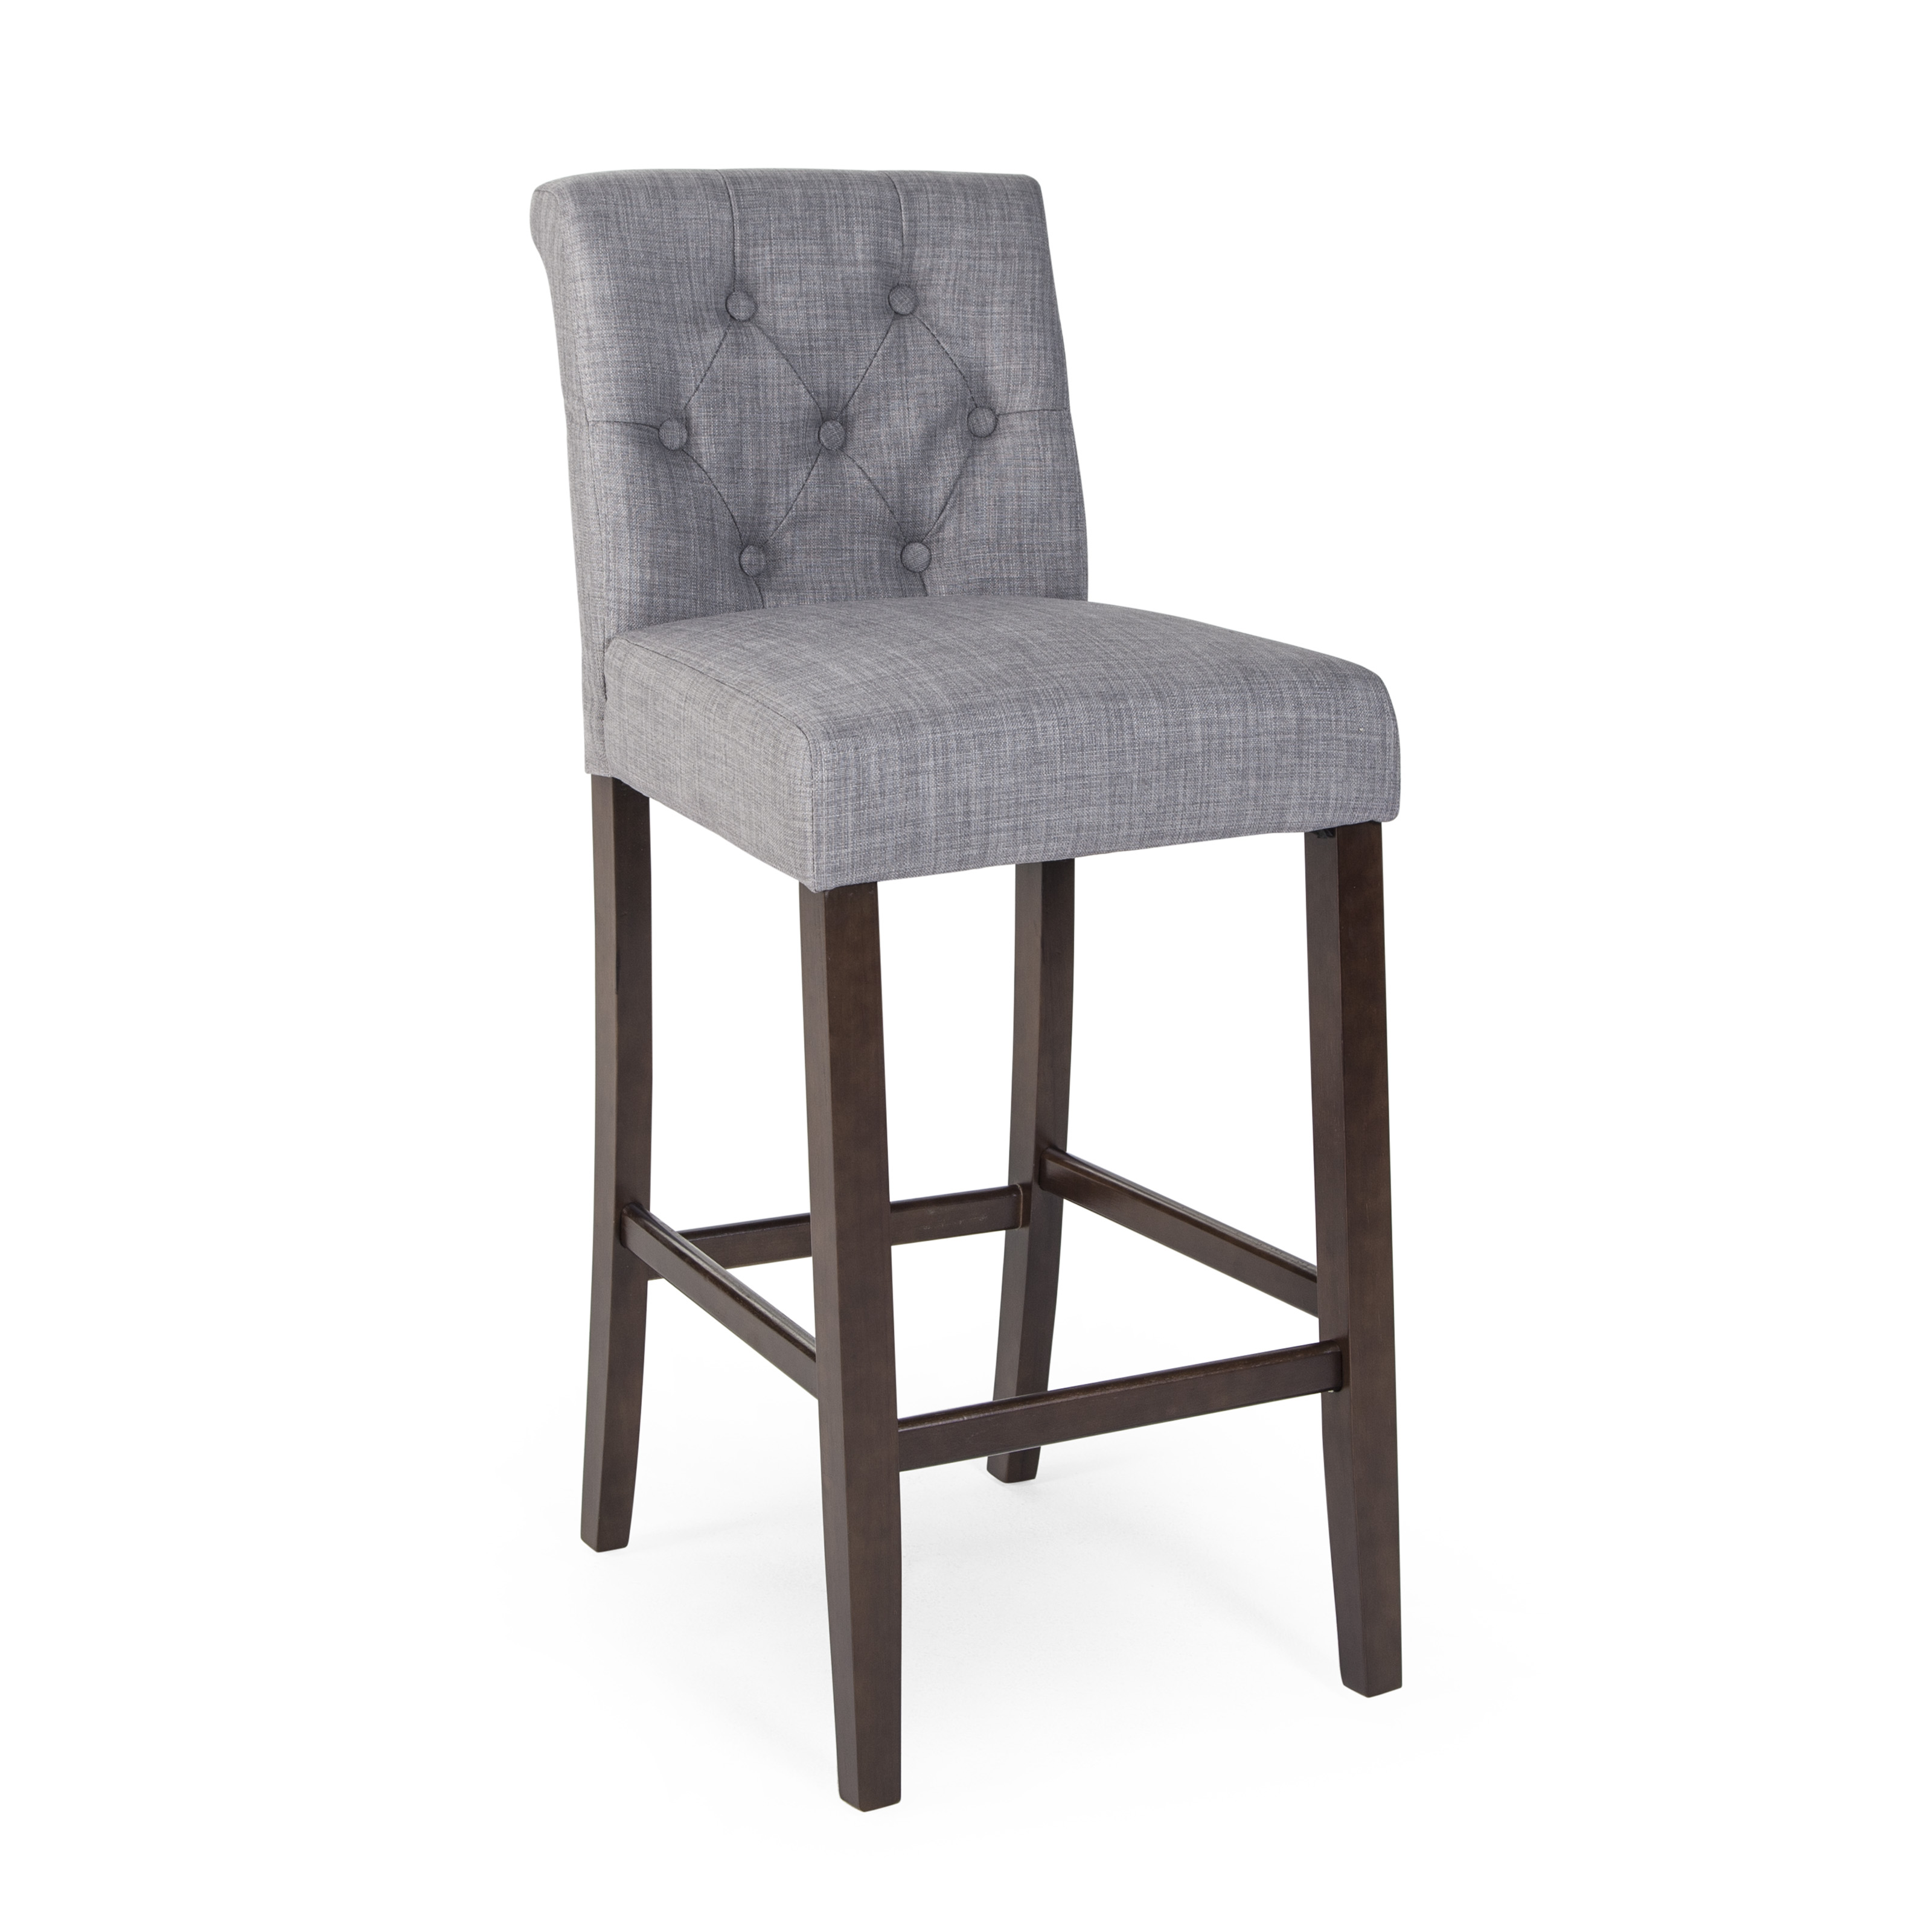 Counter Stools With Arms Part - 30: Hayneedle